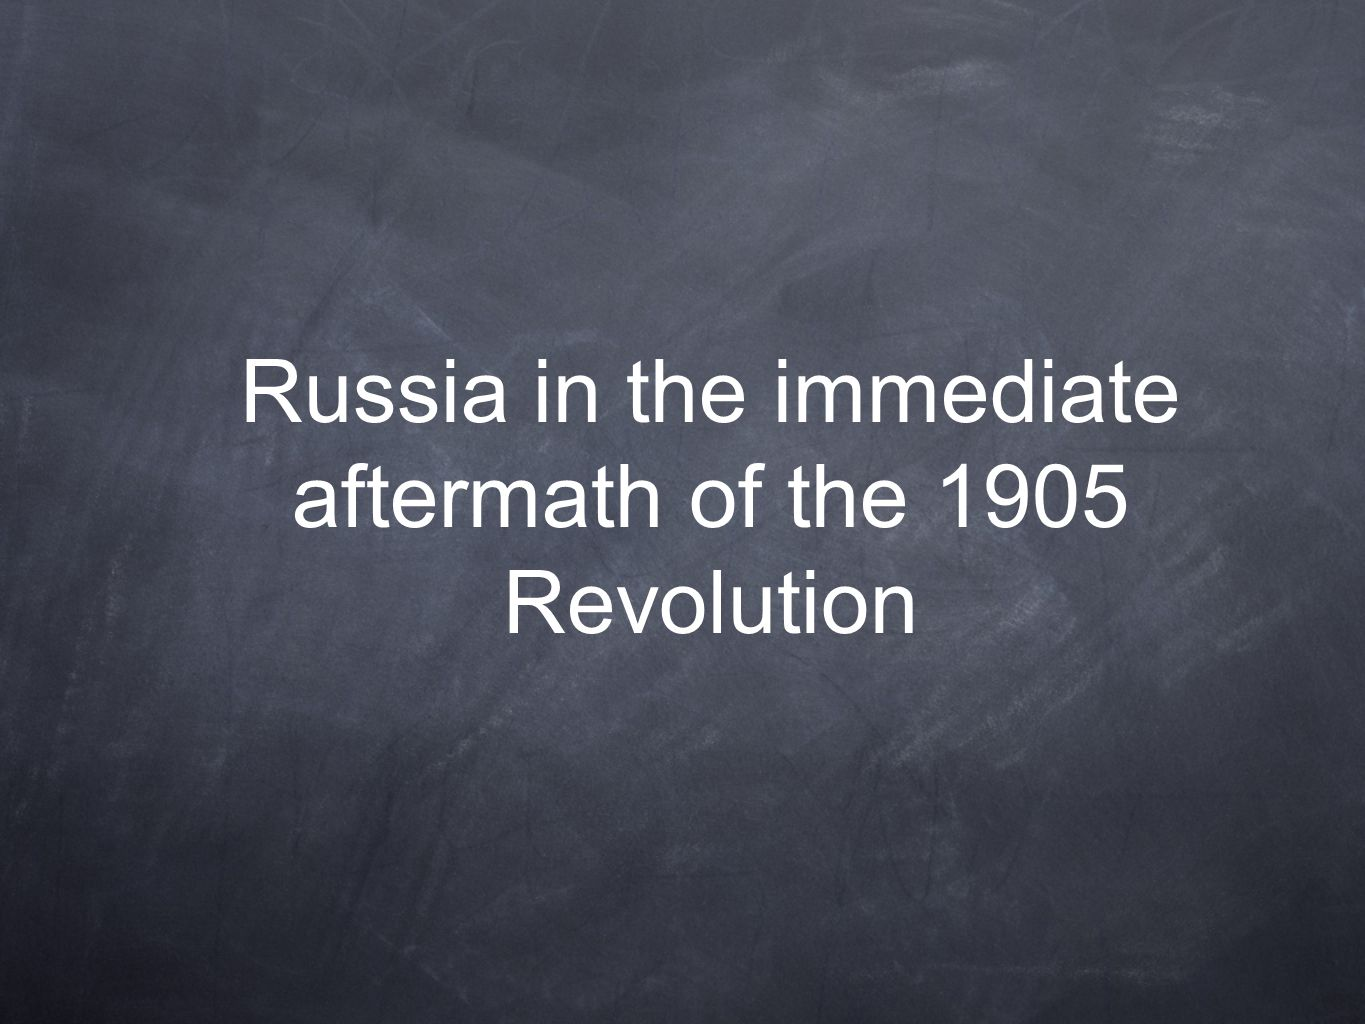 Russia in the immediate aftermath of the 1905 Revolution